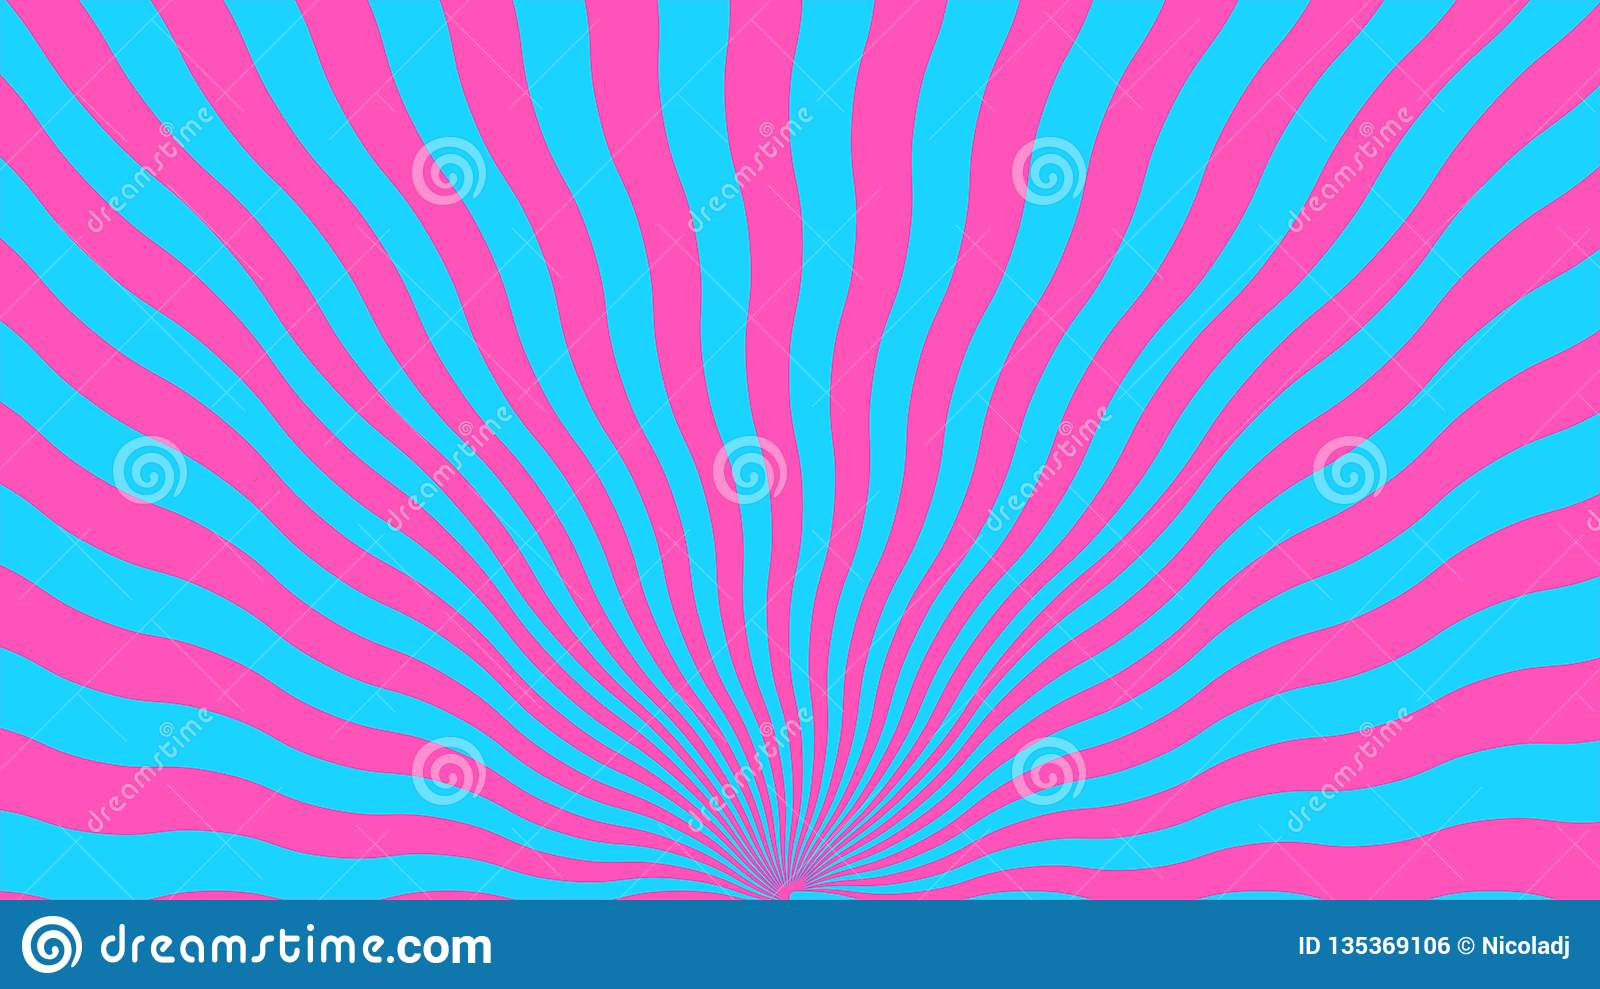 Abstract background from curved pink and blue lines